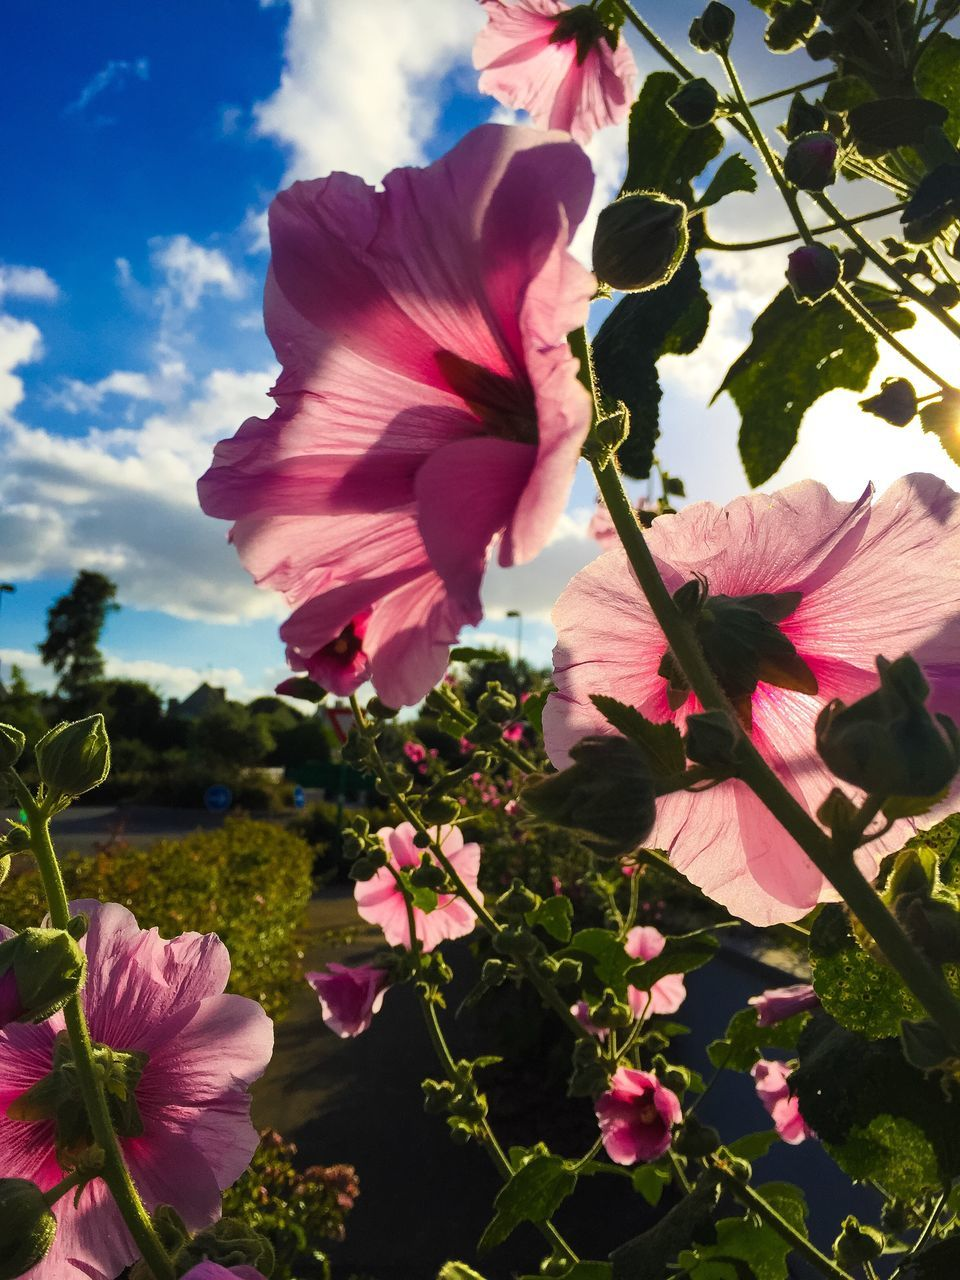 flower, fragility, petal, beauty in nature, growth, pink color, flower head, freshness, nature, blooming, plant, outdoors, day, no people, blossom, park - man made space, sky, stamen, close-up, springtime, tree, petunia